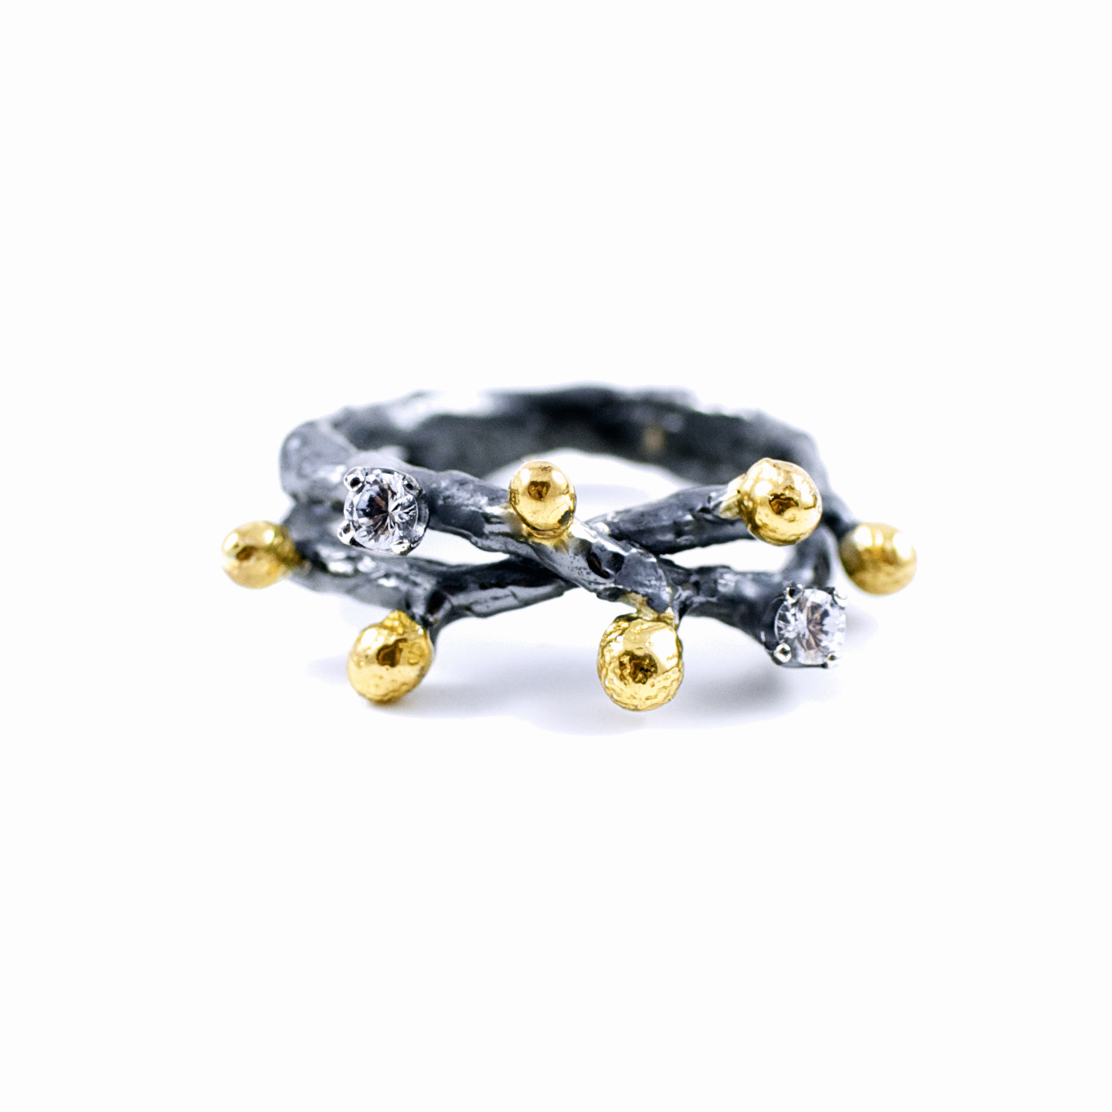 Double Sapphire Ring // Sterling Silver, Gold Vermeil, White Sapphires (2014)